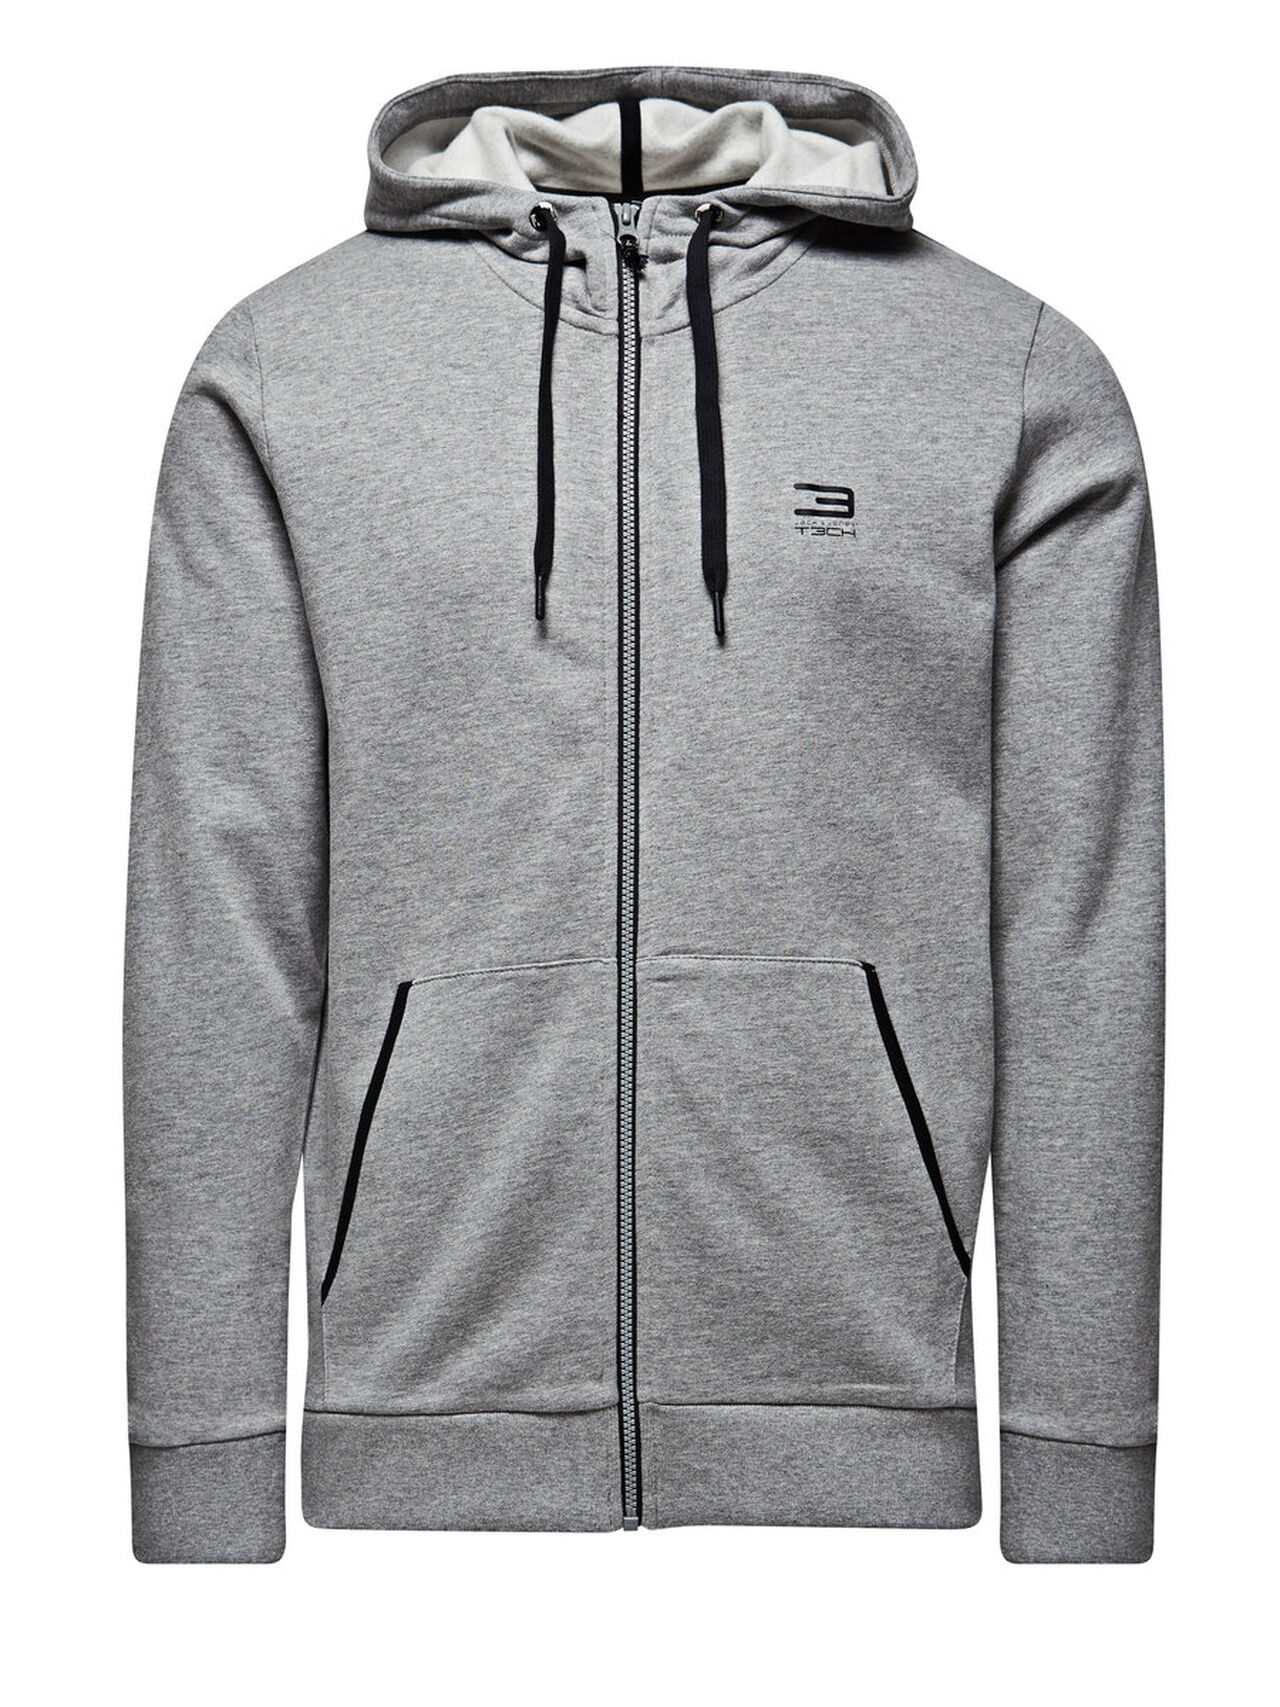 Jack & Jones Tech JJSLIDER Sweatvesten Grijs